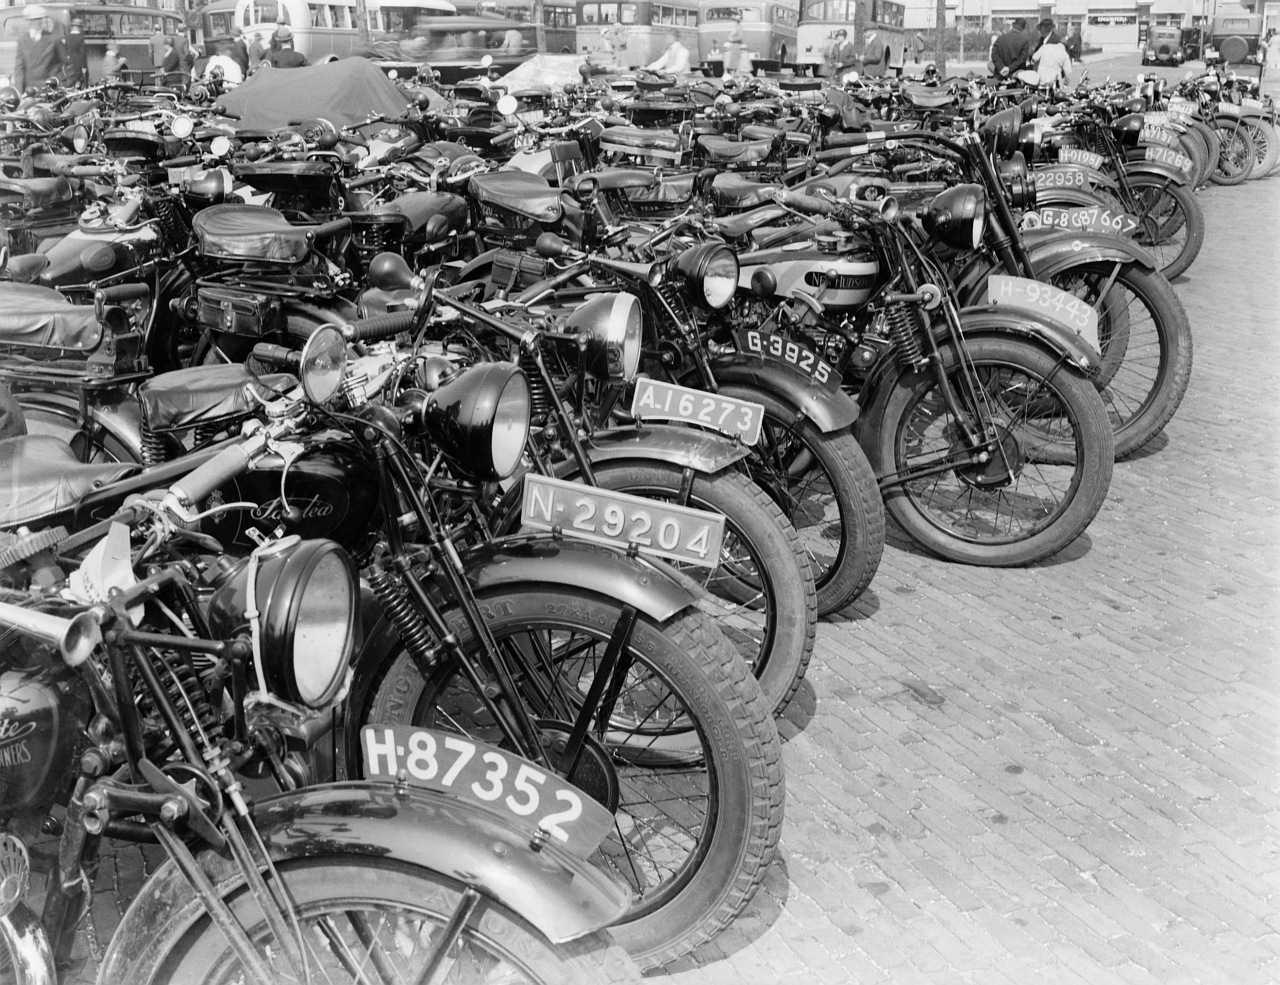 rare motorcycles vintage motorcycles classics motorcycles